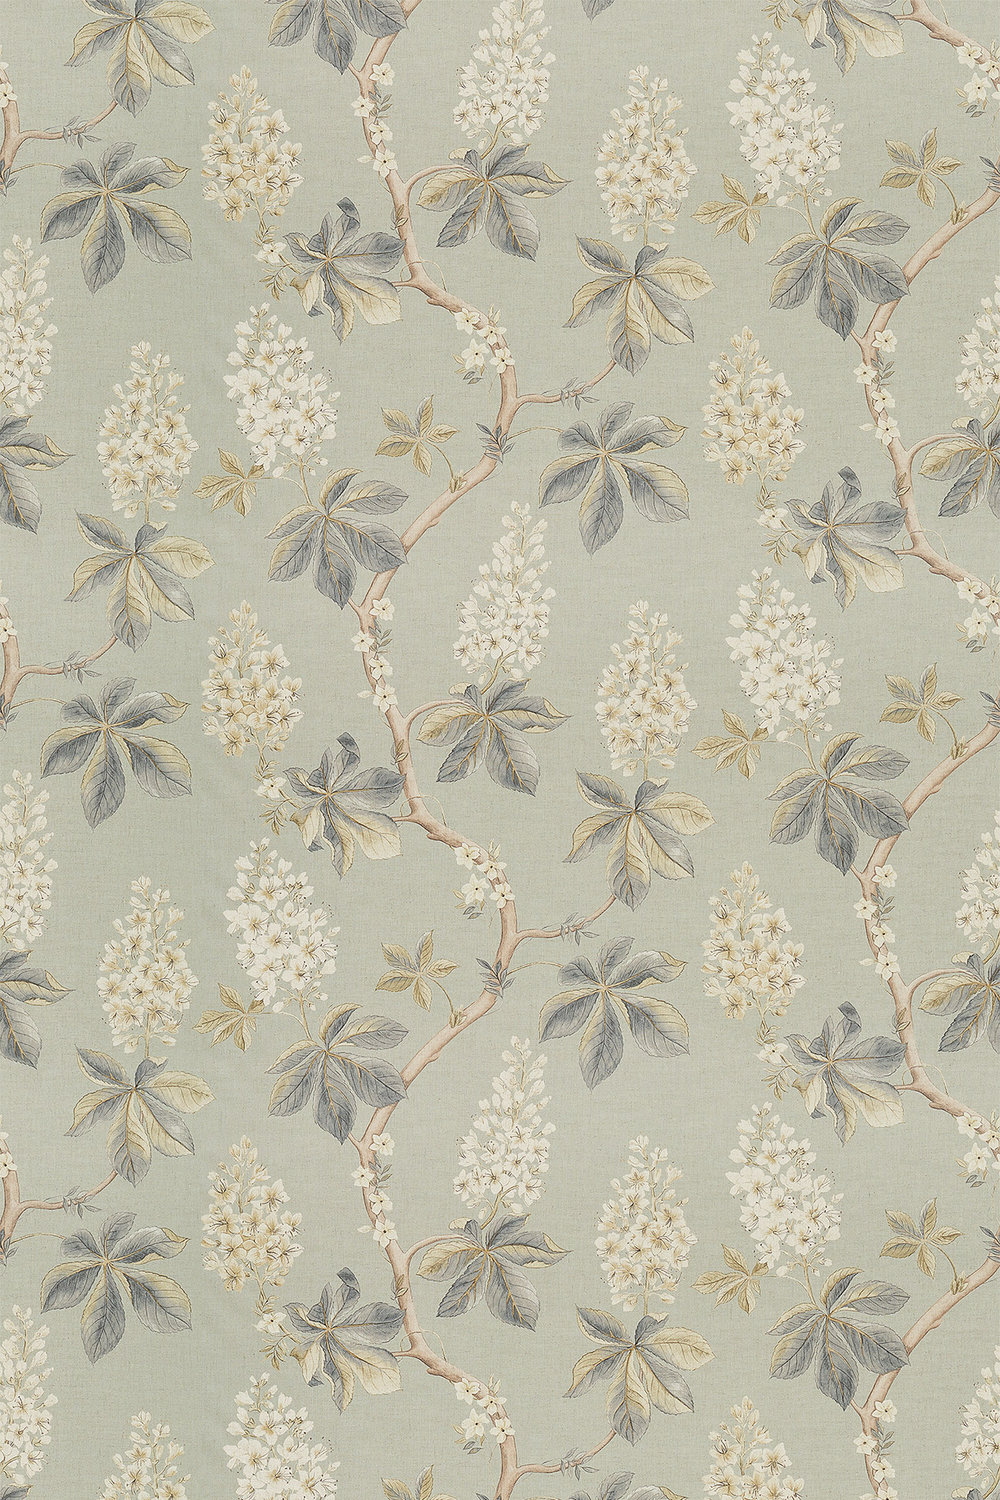 Sanderson Chestnut Tree Grey Blue / Sage Fabric - Product code: 225513